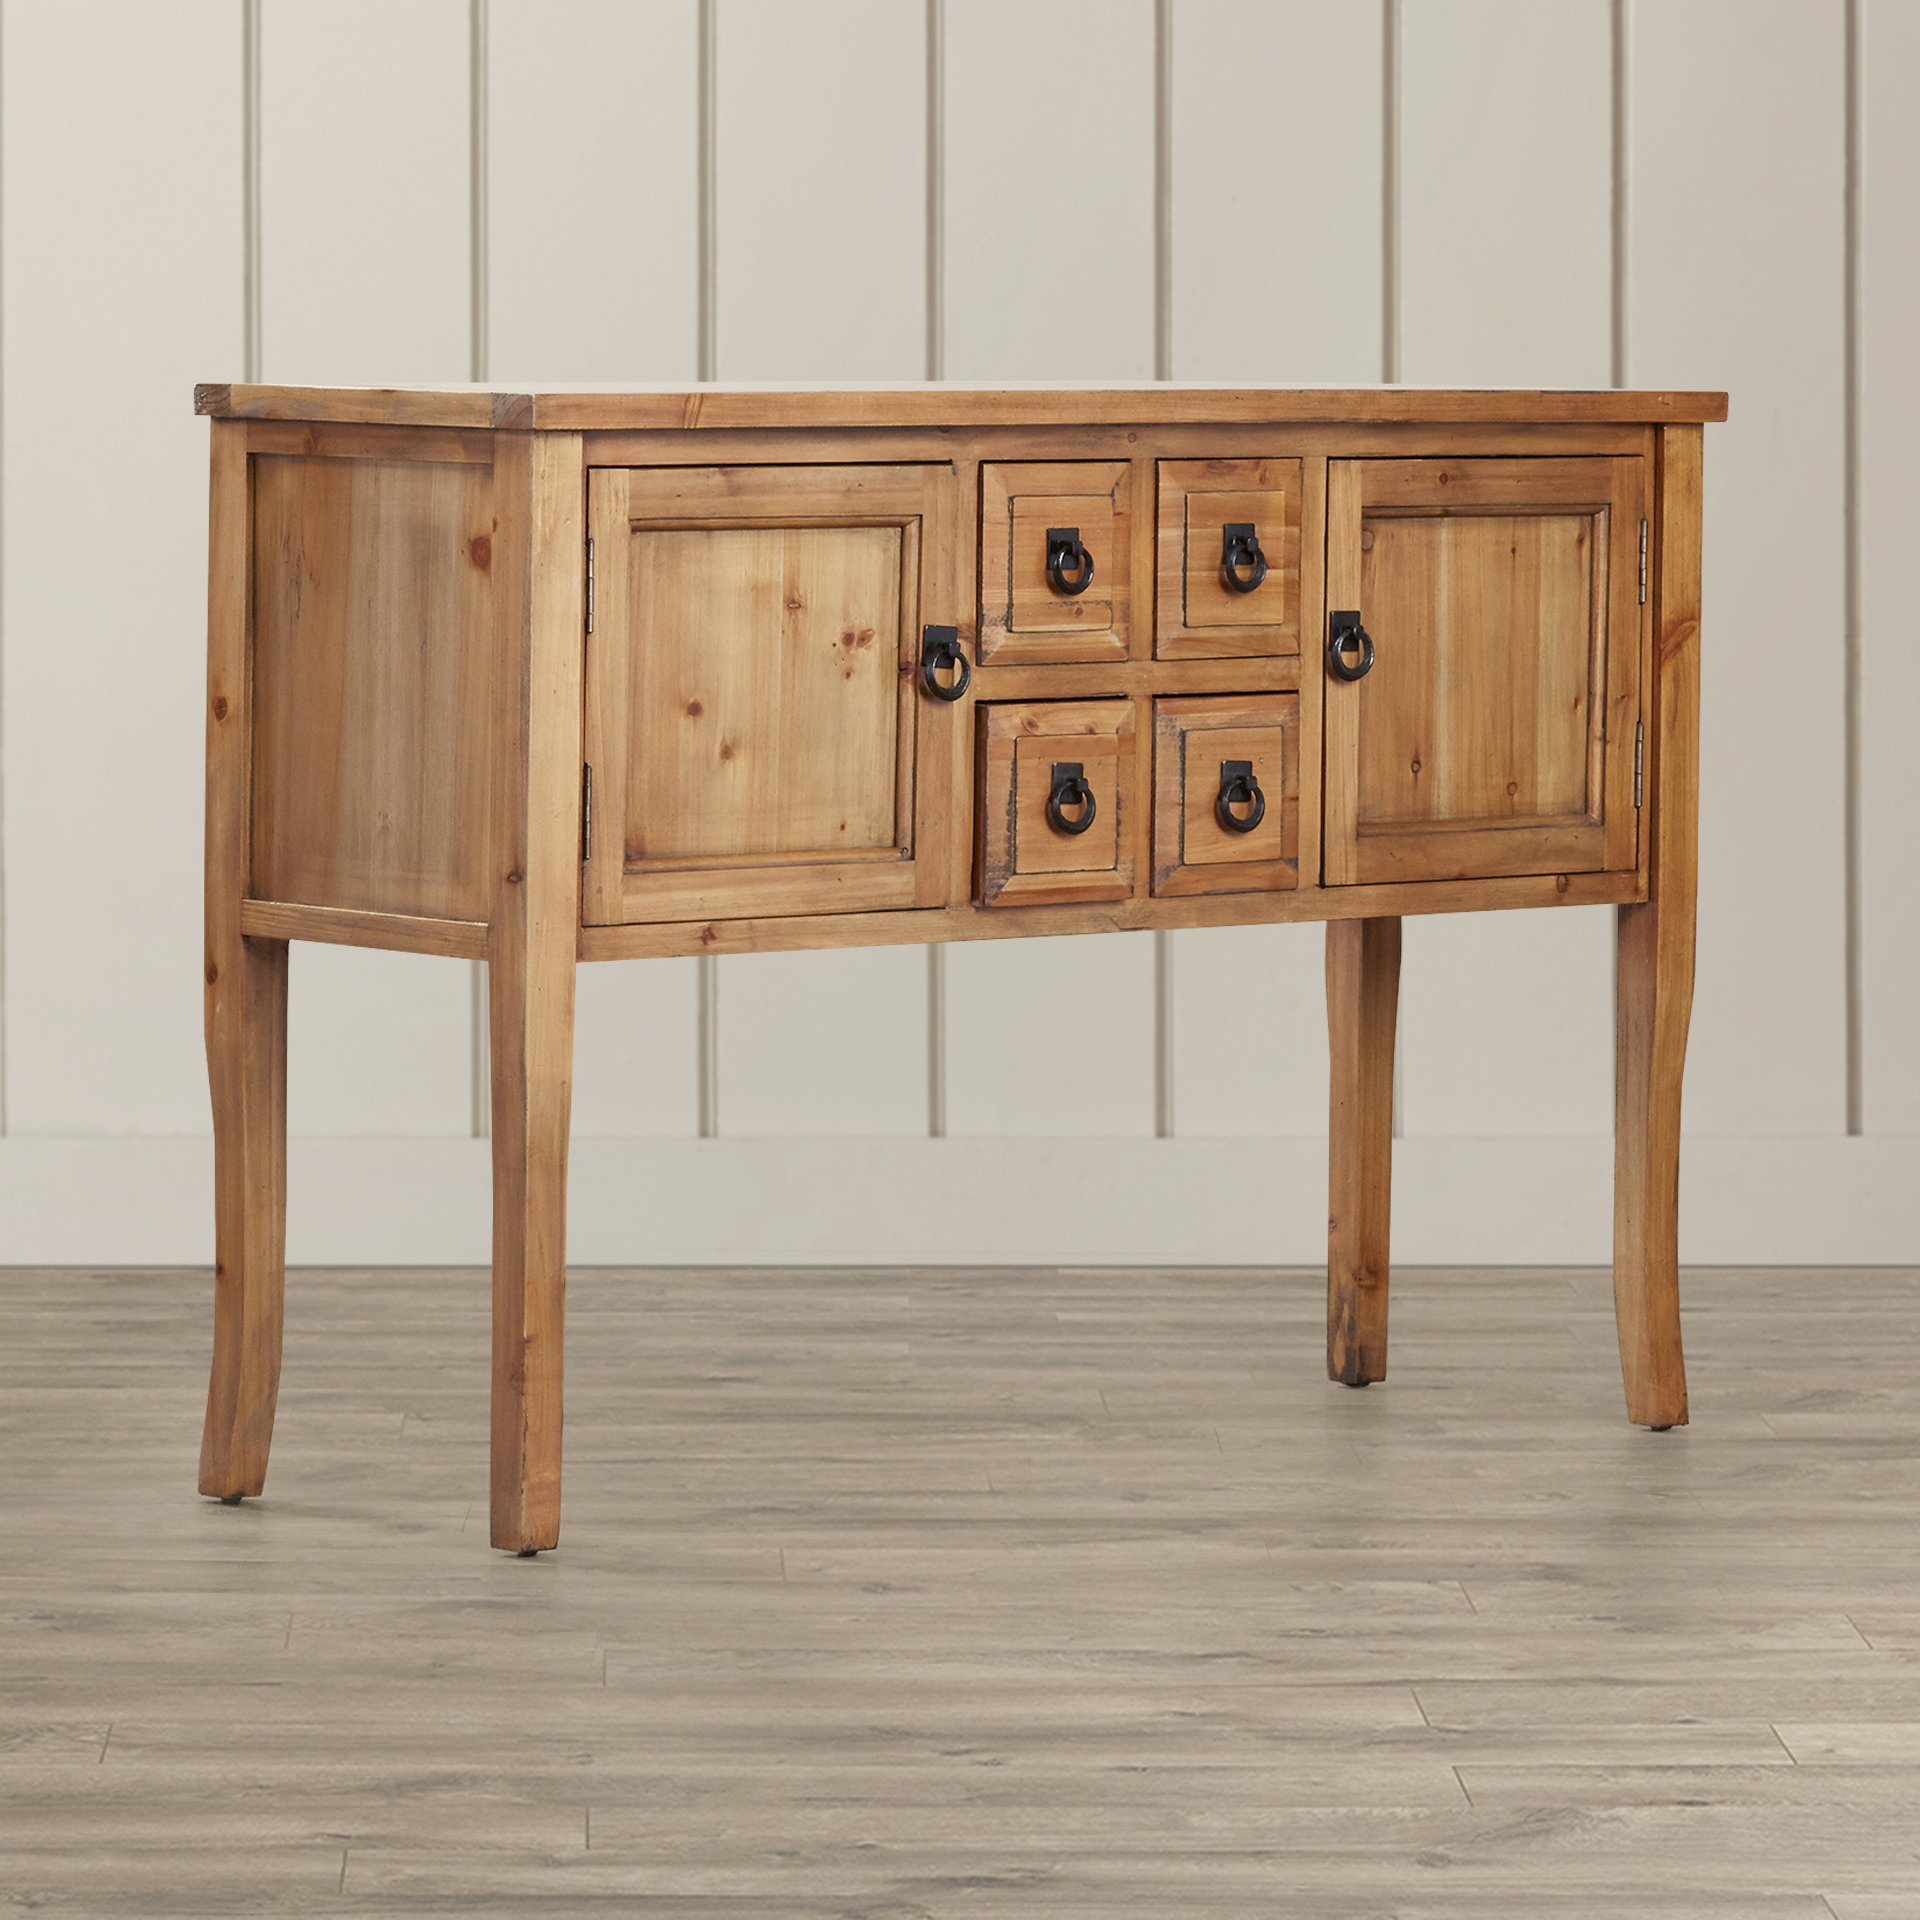 Rustic Sideboards & Buffets | Birch Lane With Regard To Tilman Sideboards (View 15 of 20)